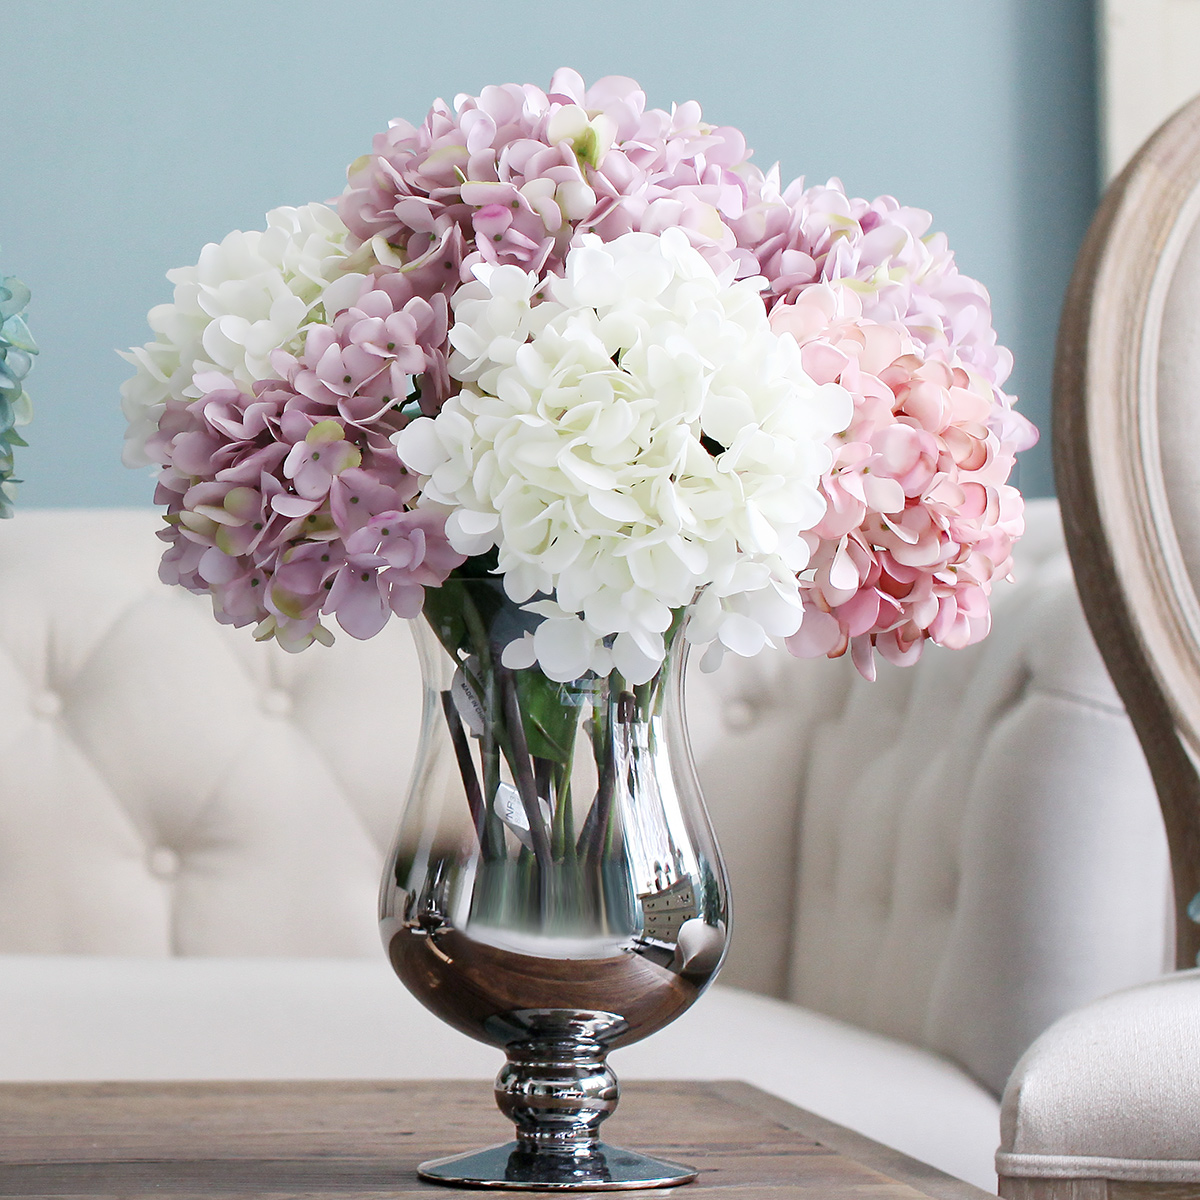 1pcs wedding delicate home decor bouquet artificial hydrangea artificial silk flower hydrangea bouquet party artificial flower for decoration home fleur artificielle petalos de rosa izmirmasajfo Choice Image